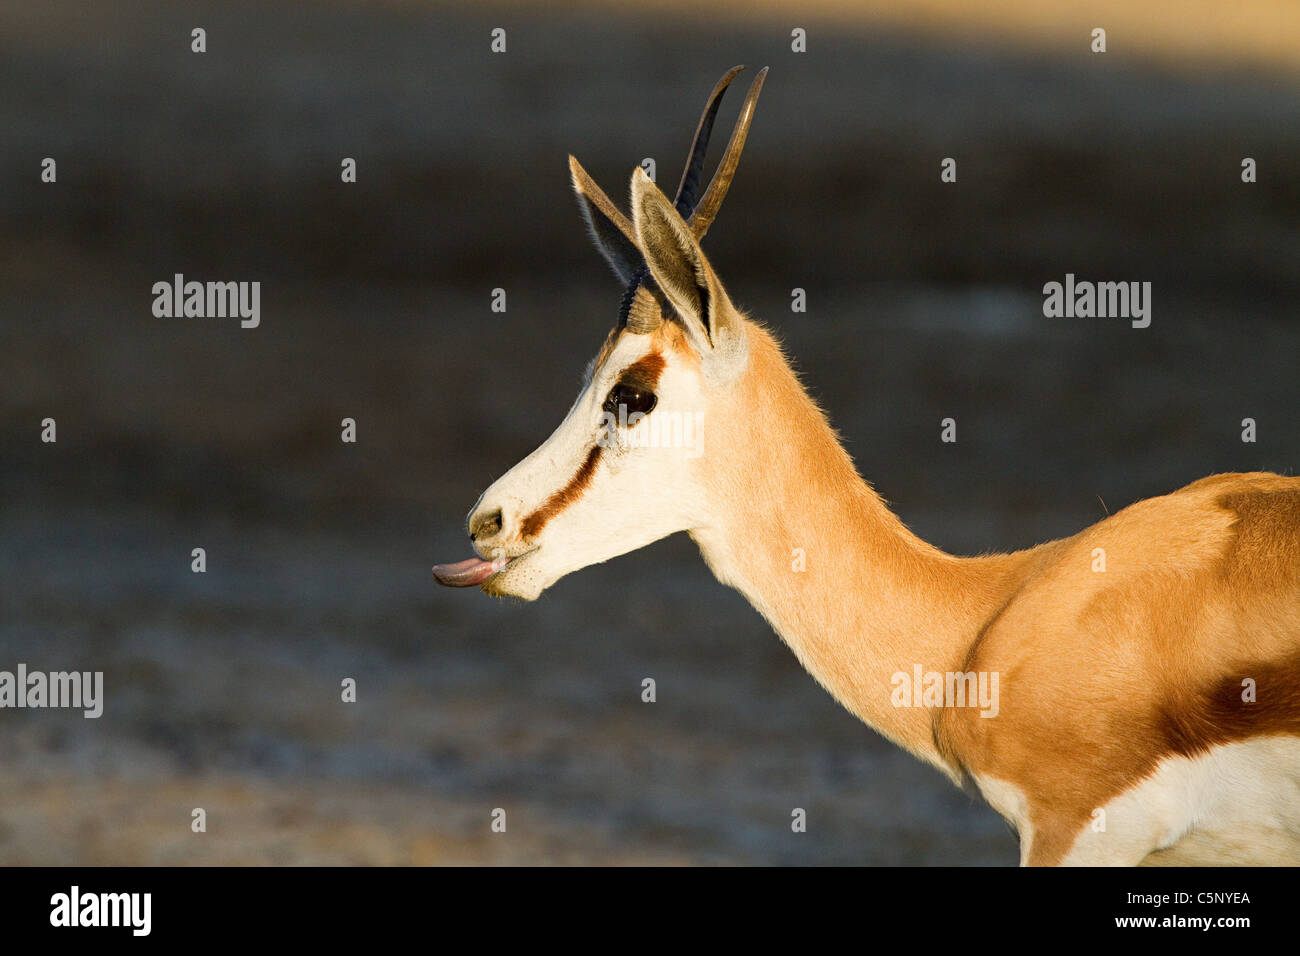 Springbok sticking out tongue - Stock Image